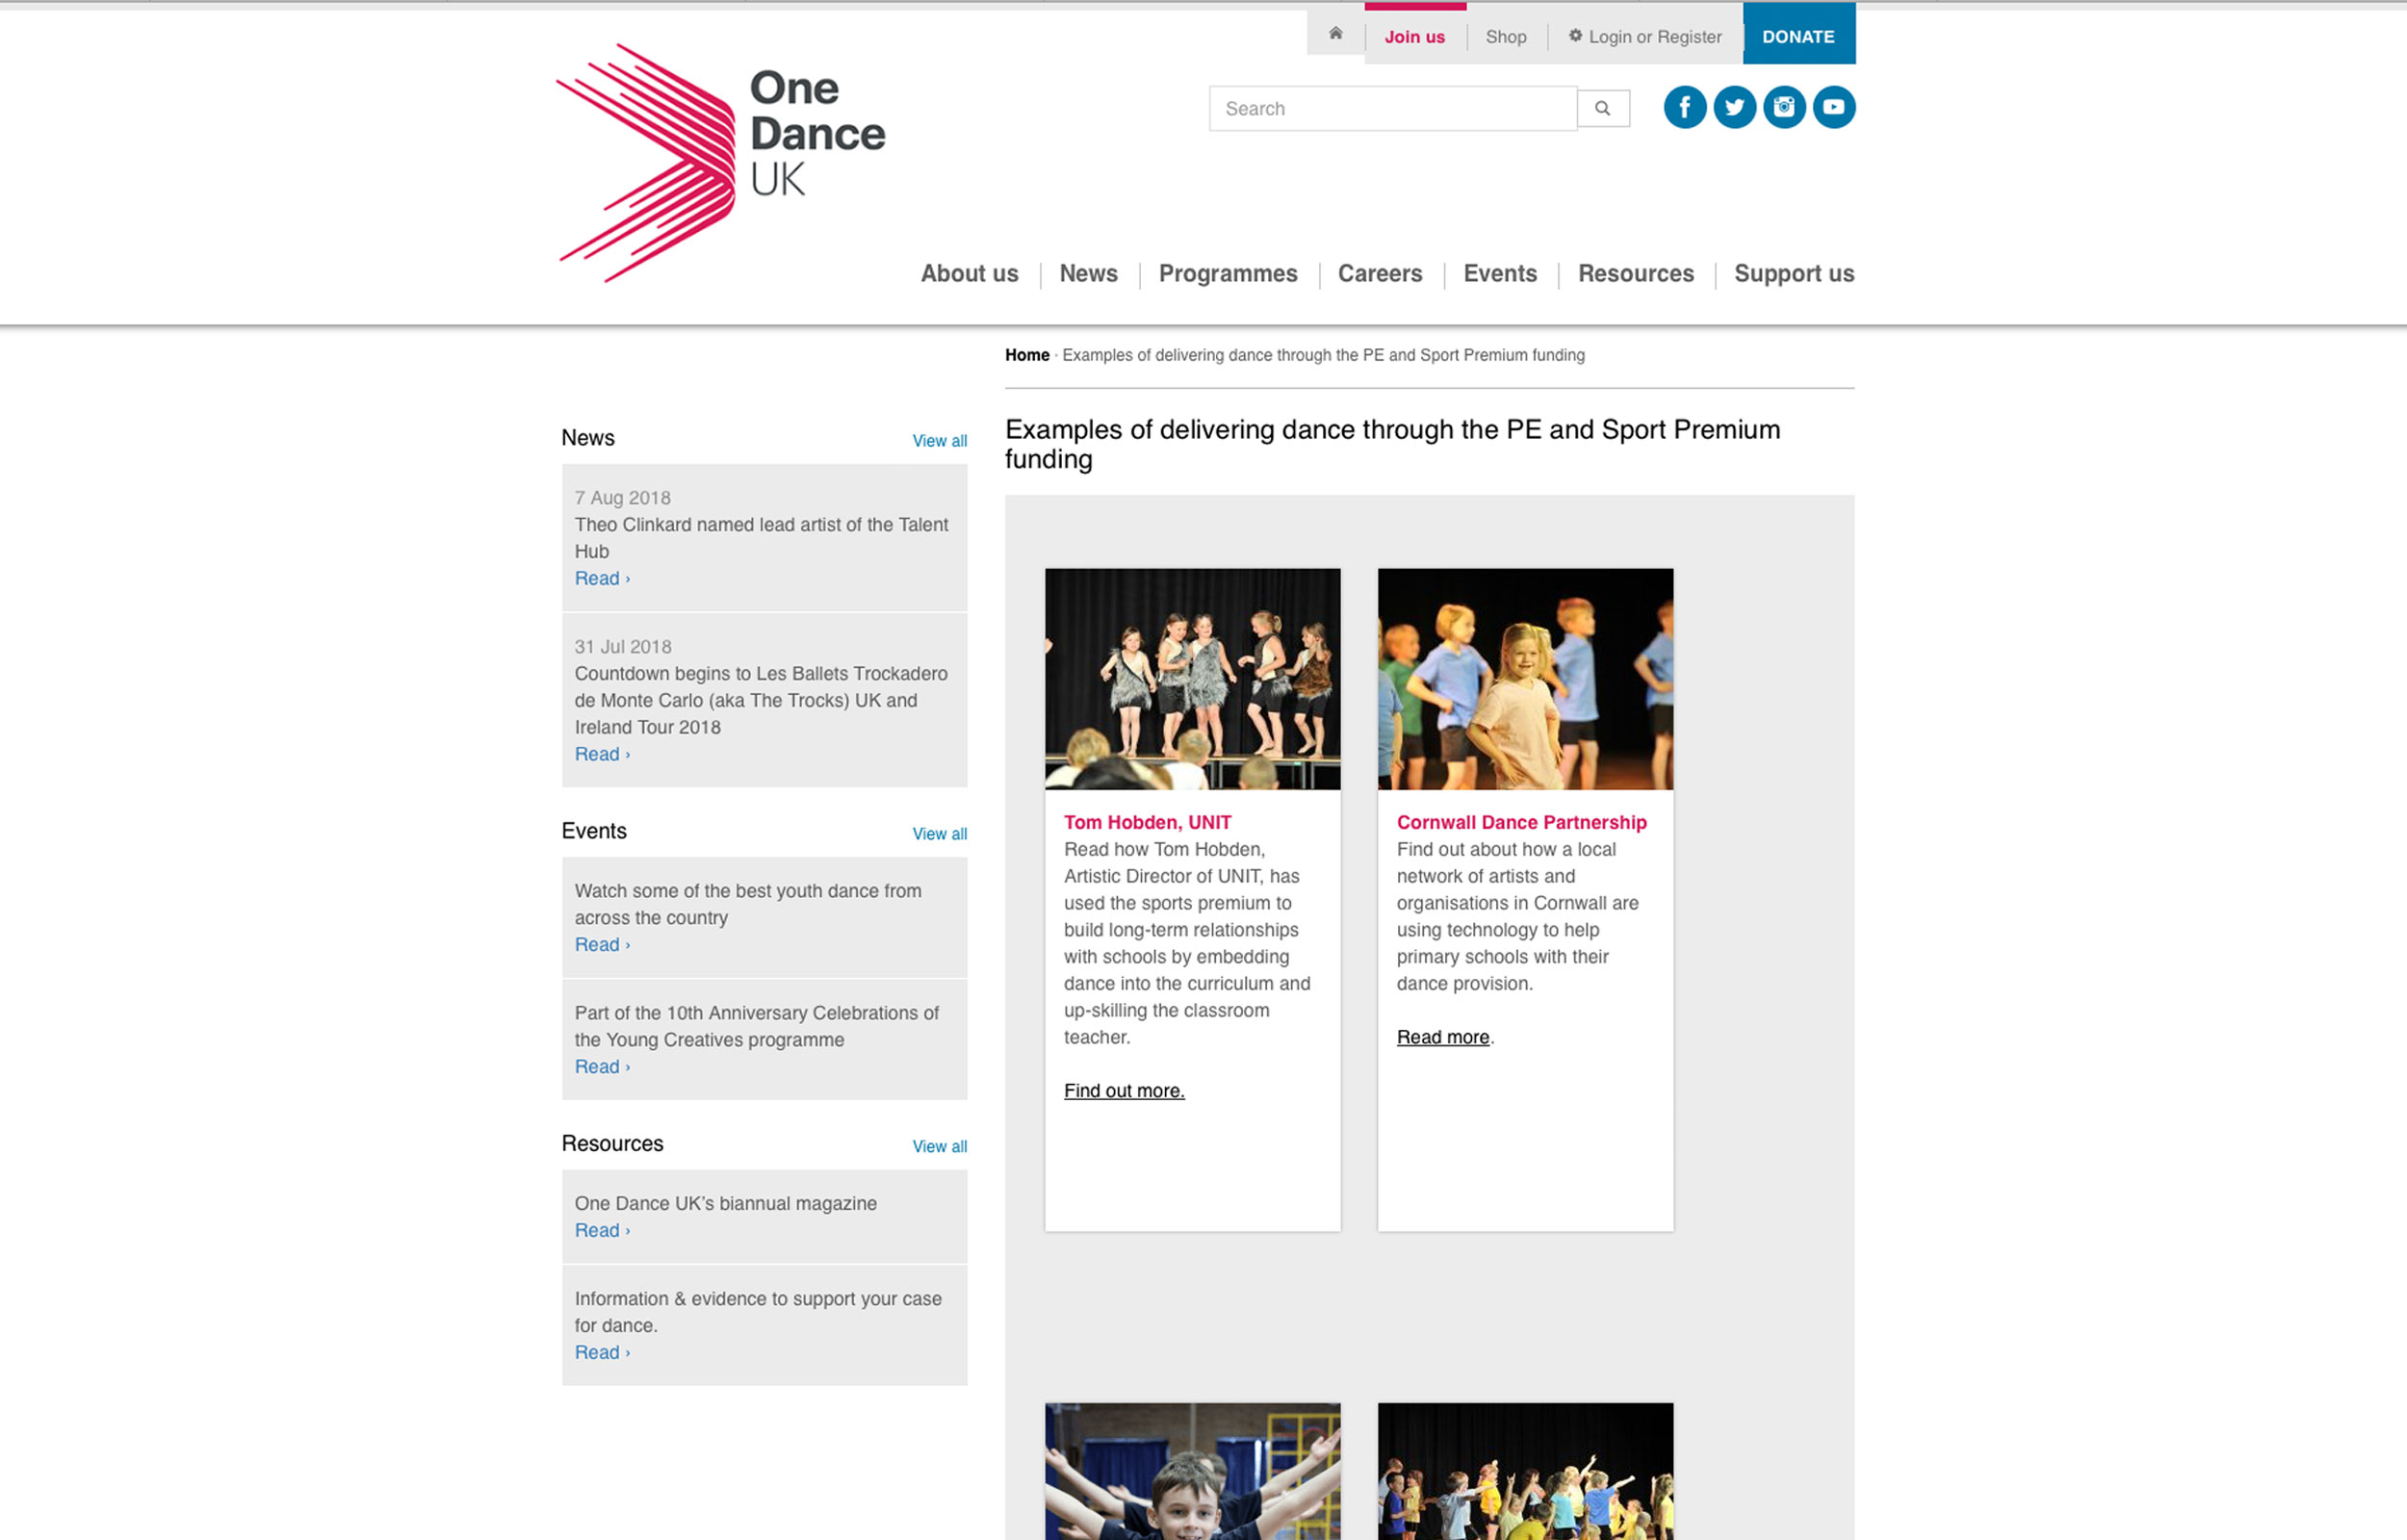 One Dance UK - As an example for One Dance UK, the sector support organisation, of delivering dance through the PE and Sport Premium funding.Read more